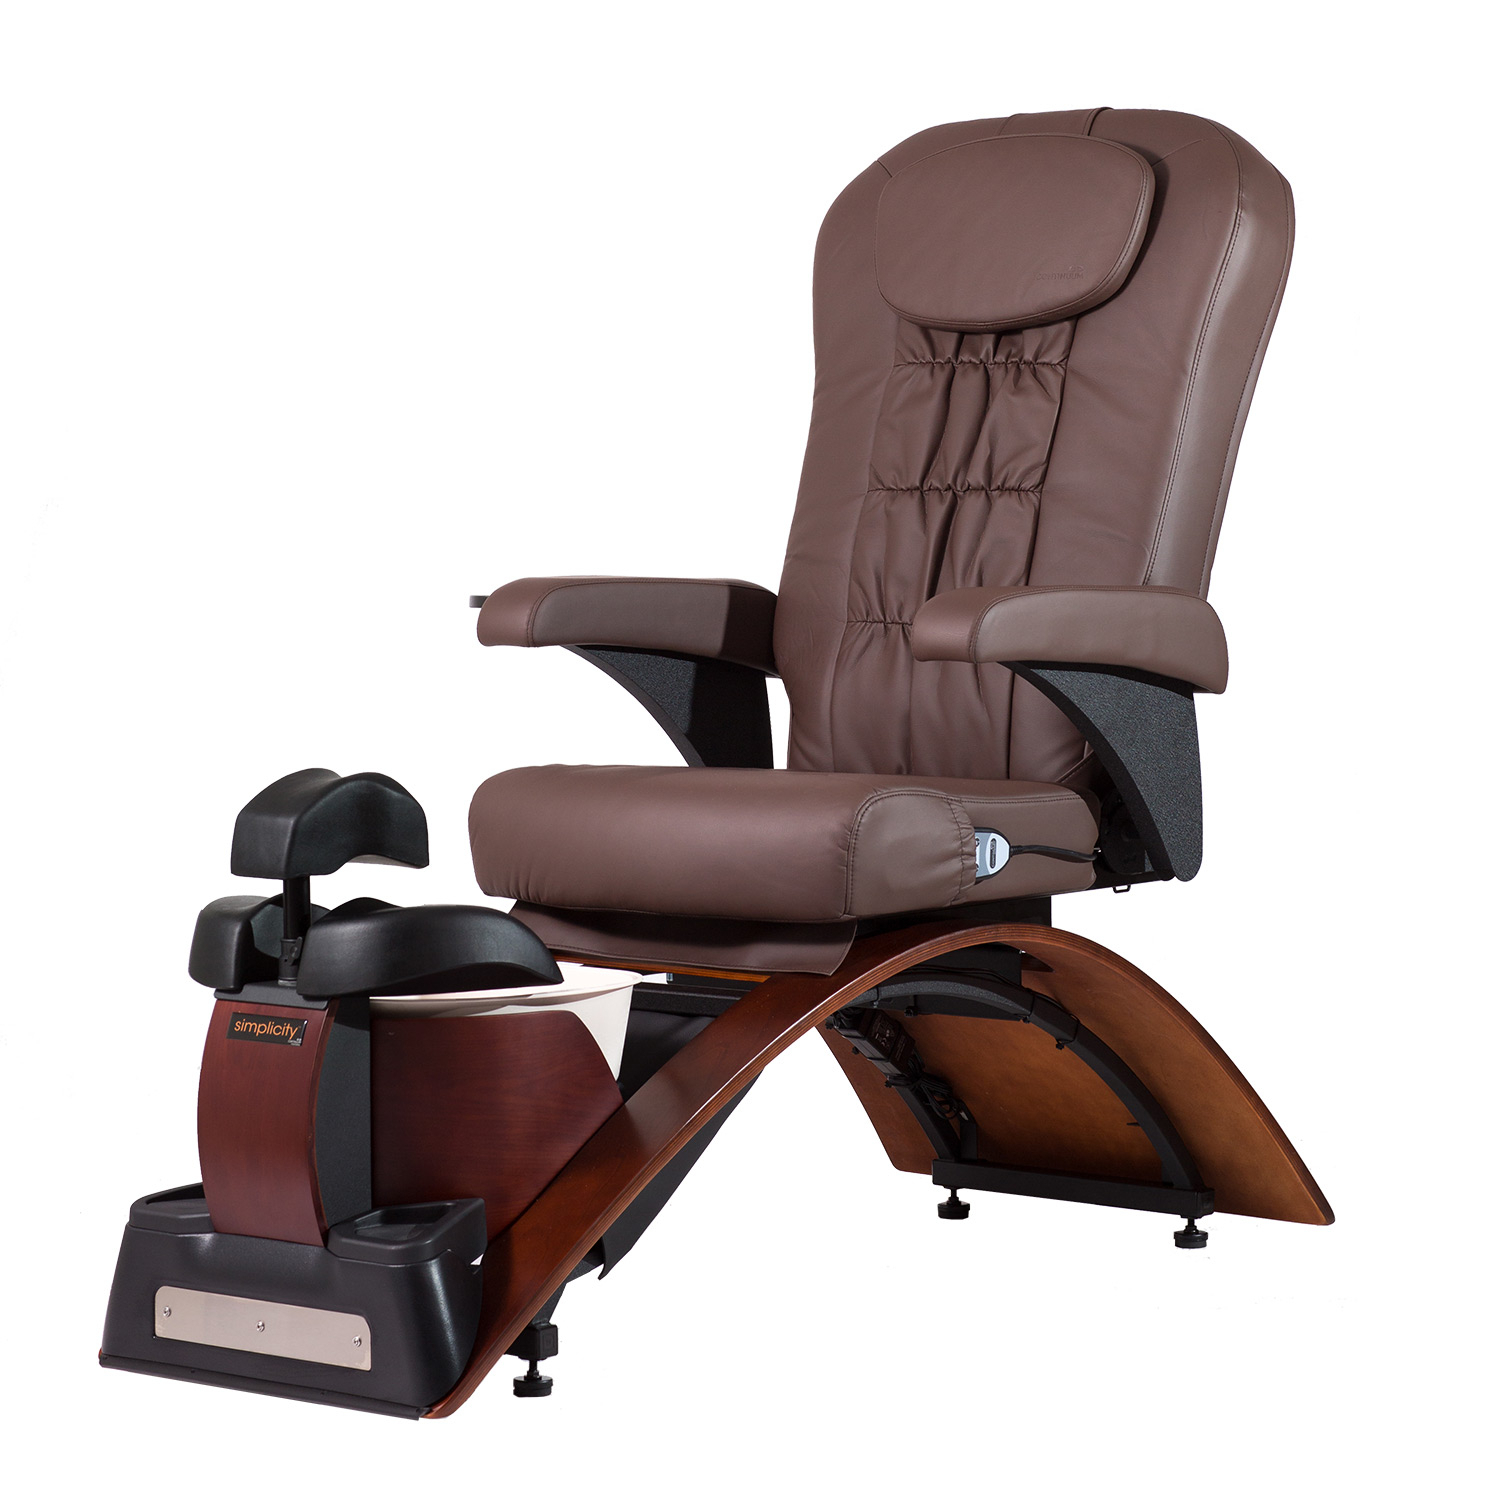 Continuum Simplicity Se Pedicure Spa Chair No Wall Plumbing Intended For Sofa Pedicure Chairs (View 2 of 15)